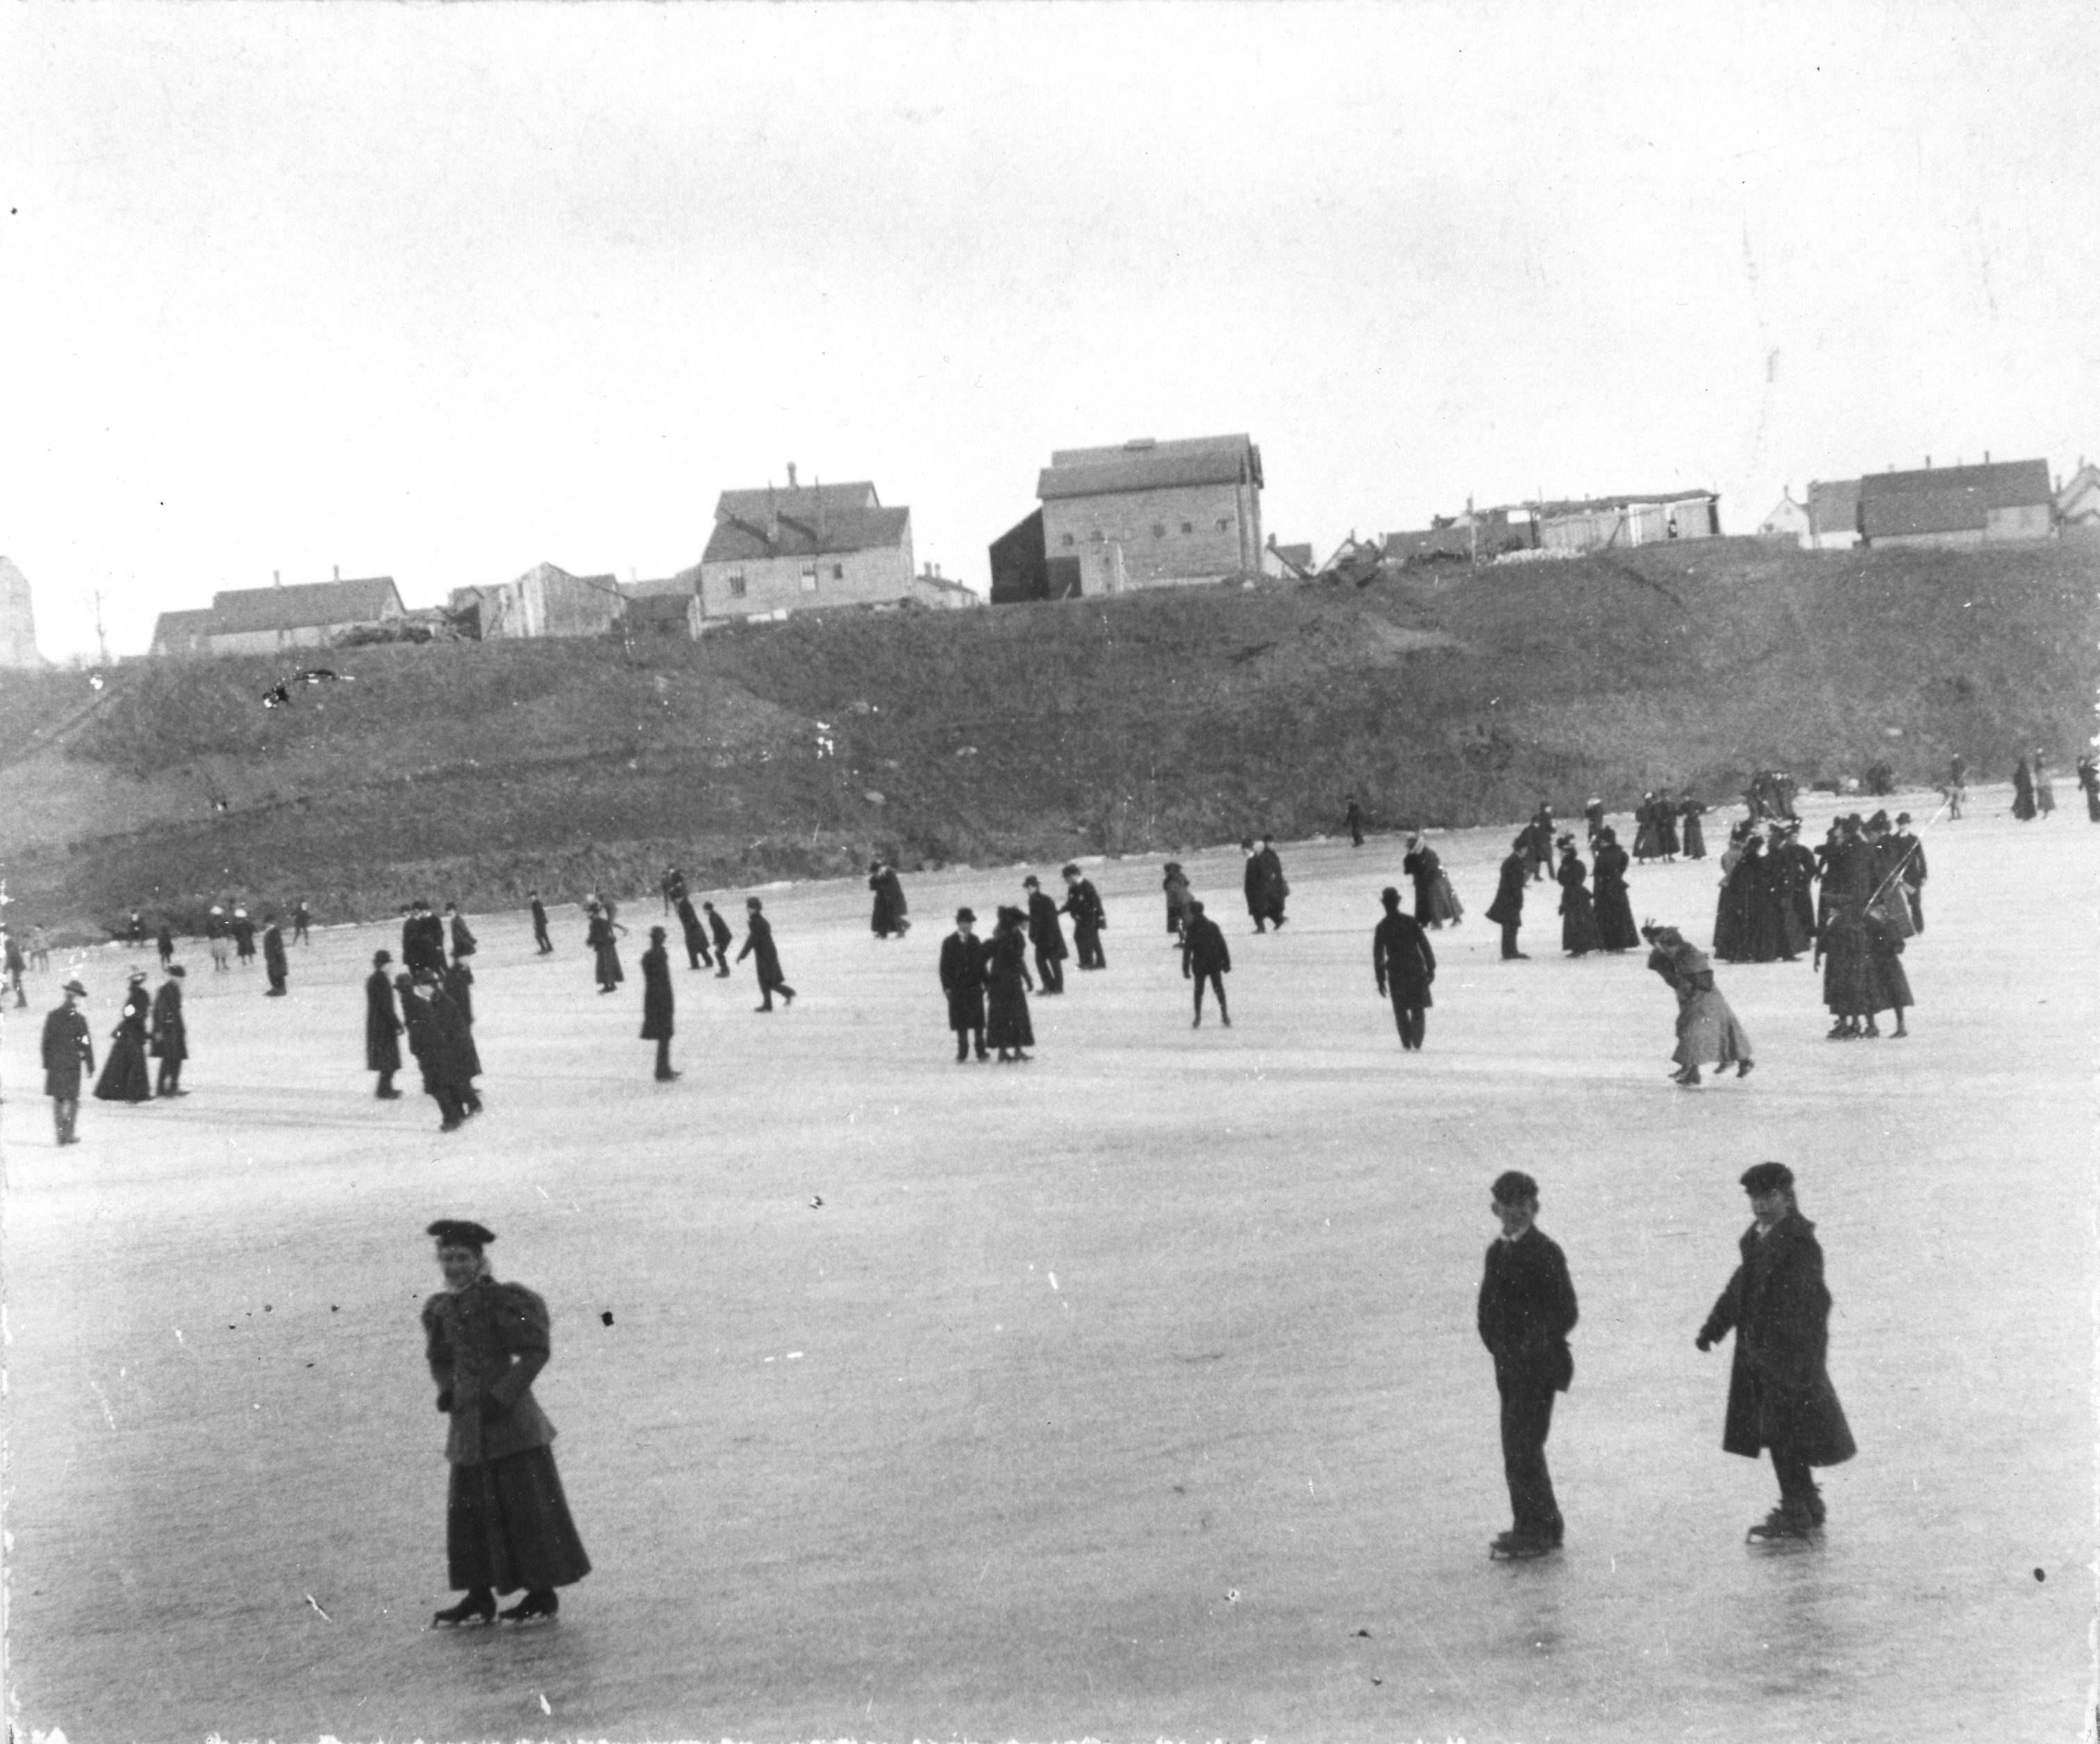 Pictured here in January of 1897, city residents ice skate on the Milwaukee River near Wright Street.